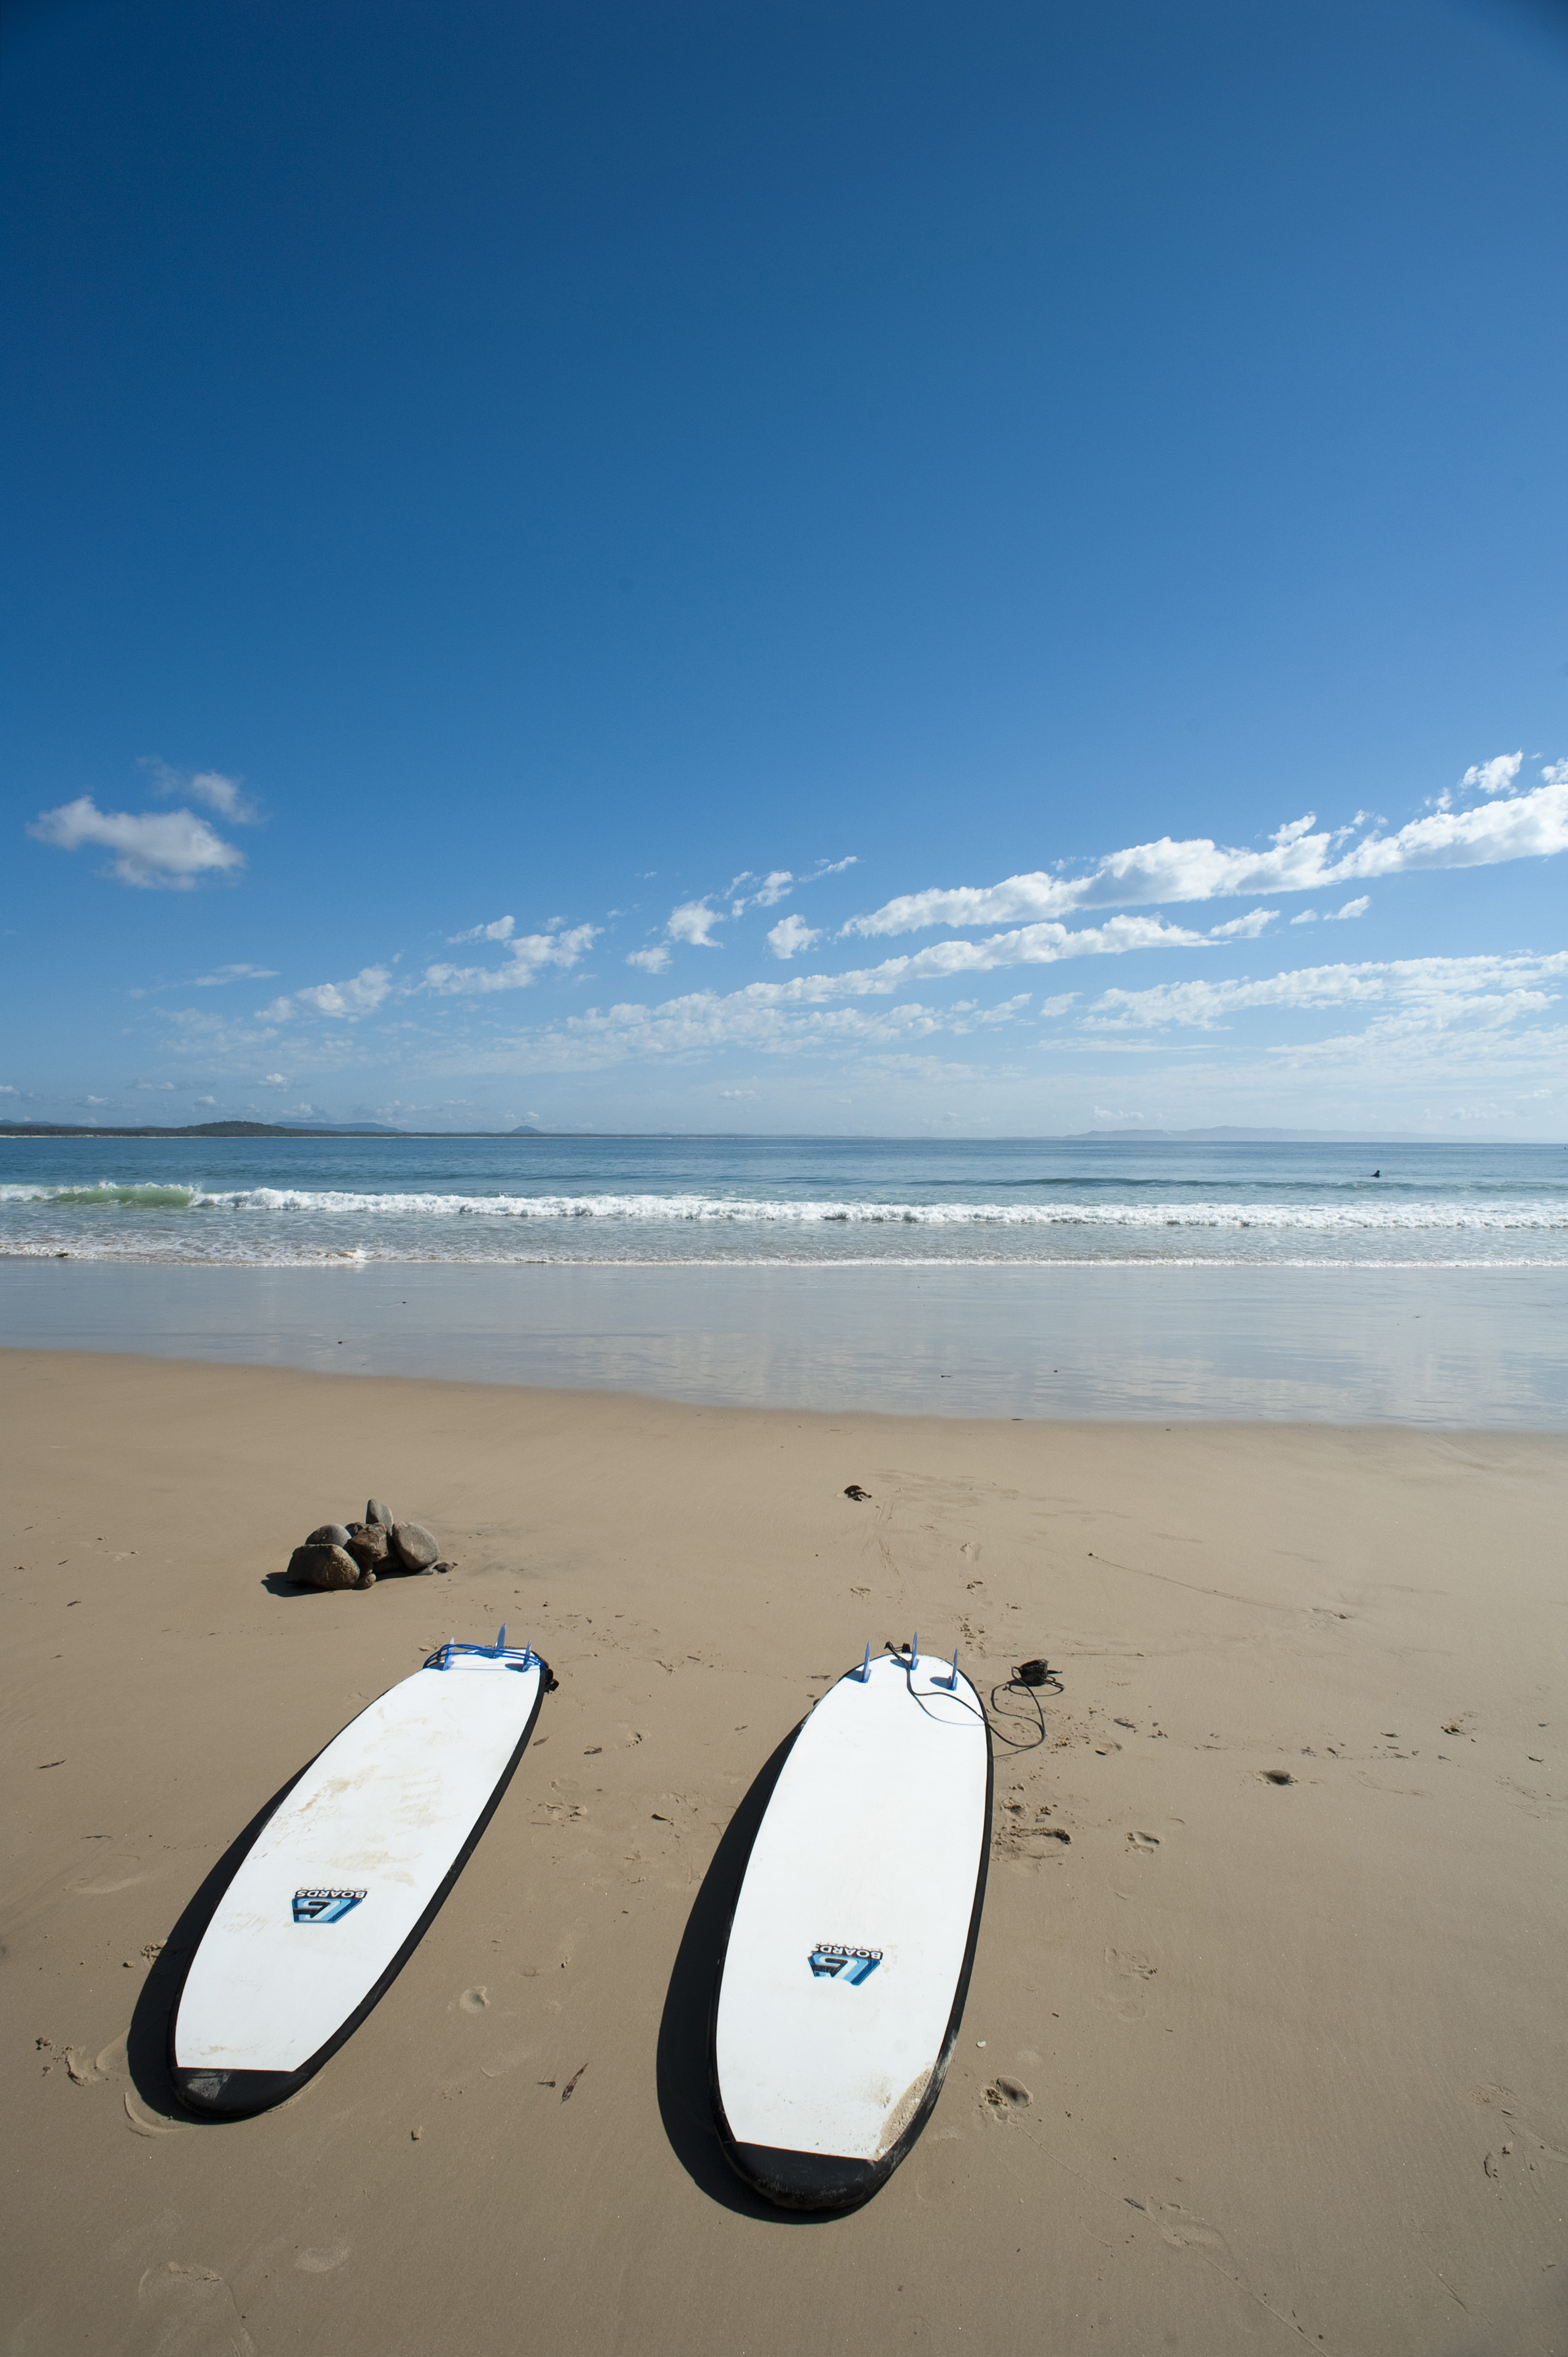 Two White Surfboards on Sandy Shore of Deserted Beach with Blue Sky